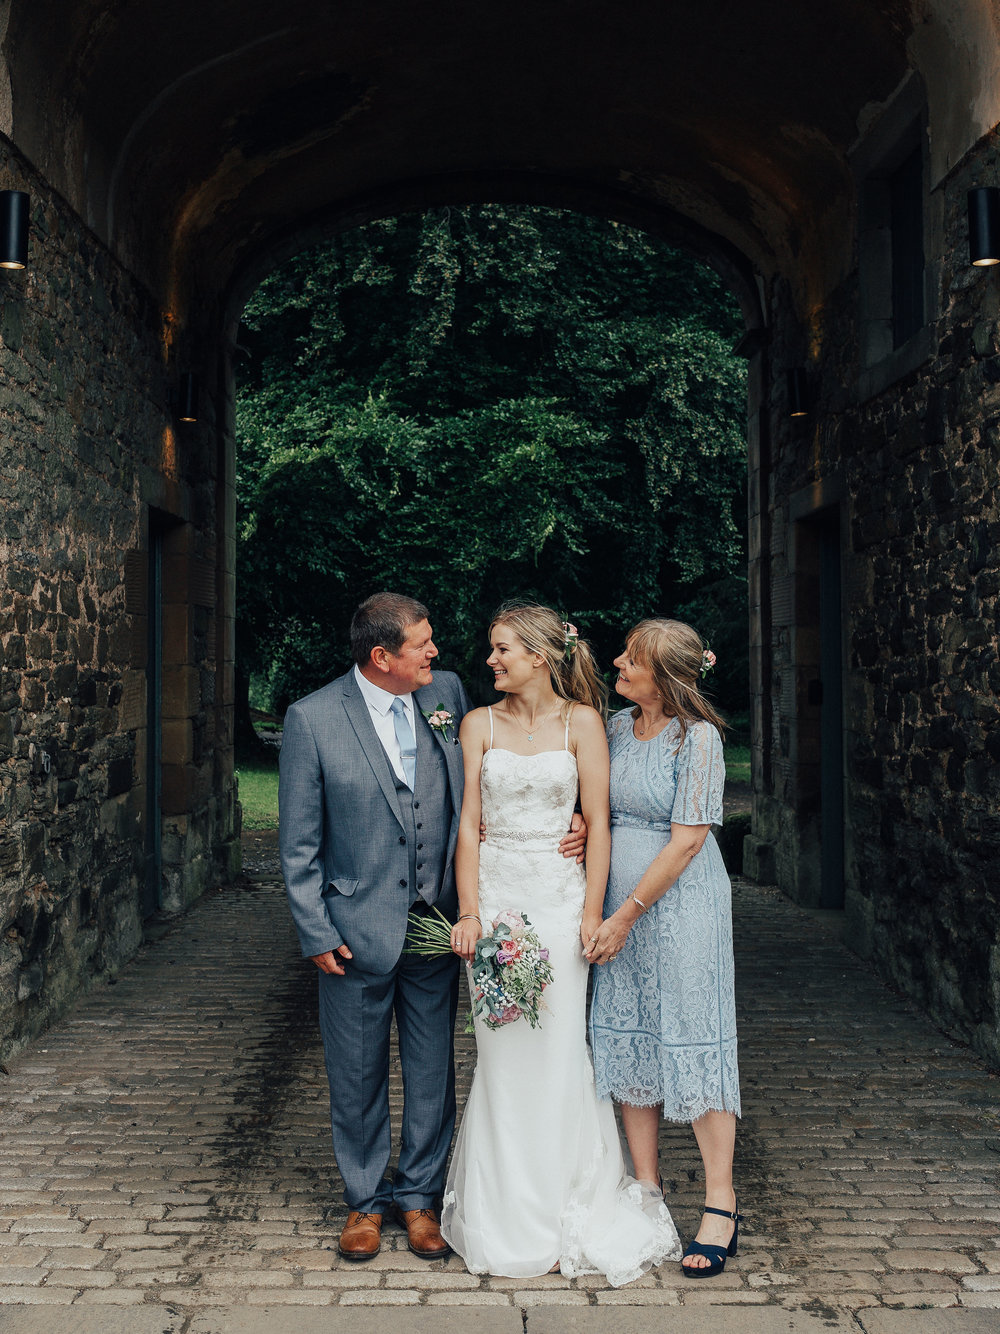 PJ_PHILLIPS_PHOTOGRAPHY_EDINBURGH_WEDDERBURN_BARNS_WEDDING_EDINBURGH_WEDDING_PHOTOGRAPHER_101.jpg